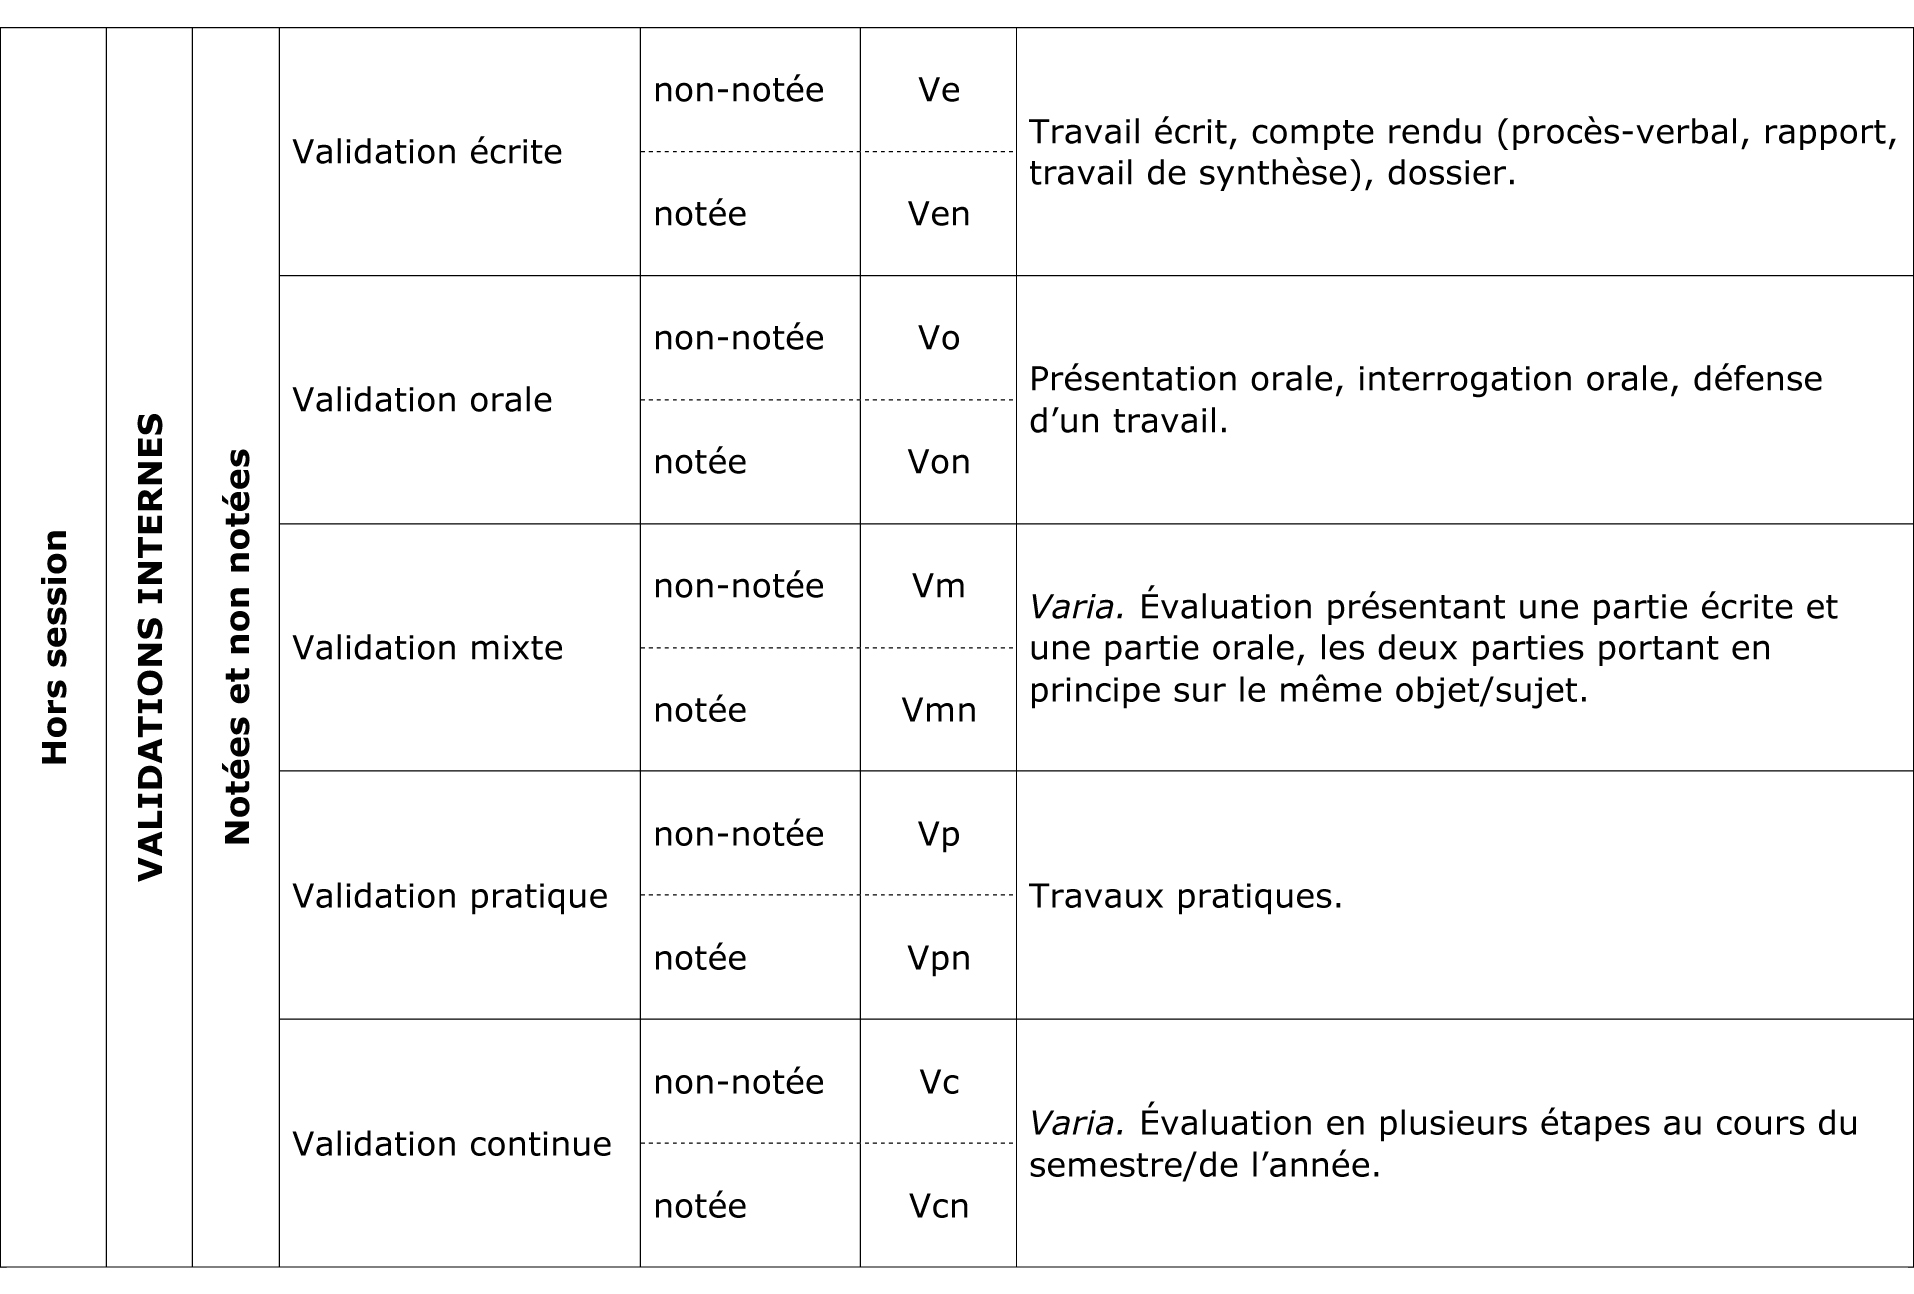 types-validations.jpg (types-validations.jpg)